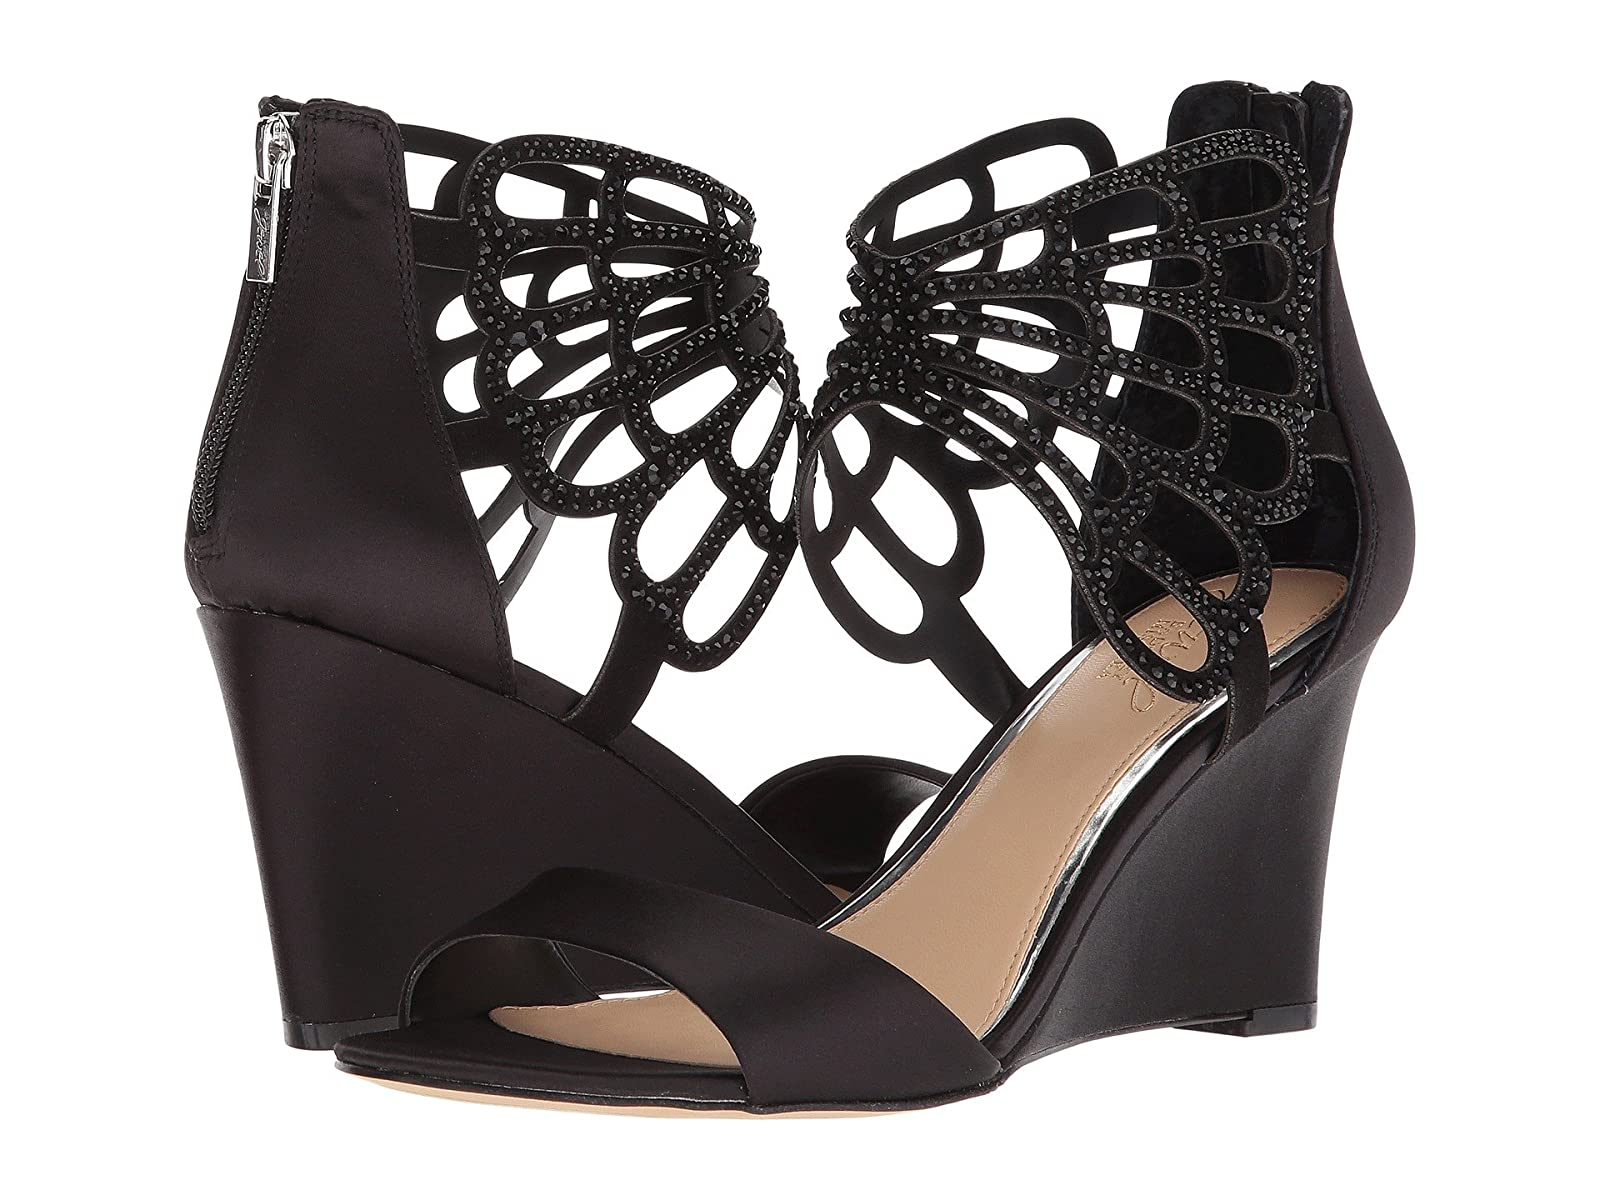 Jewel Badgley Mischka TarenCheap and distinctive eye-catching shoes